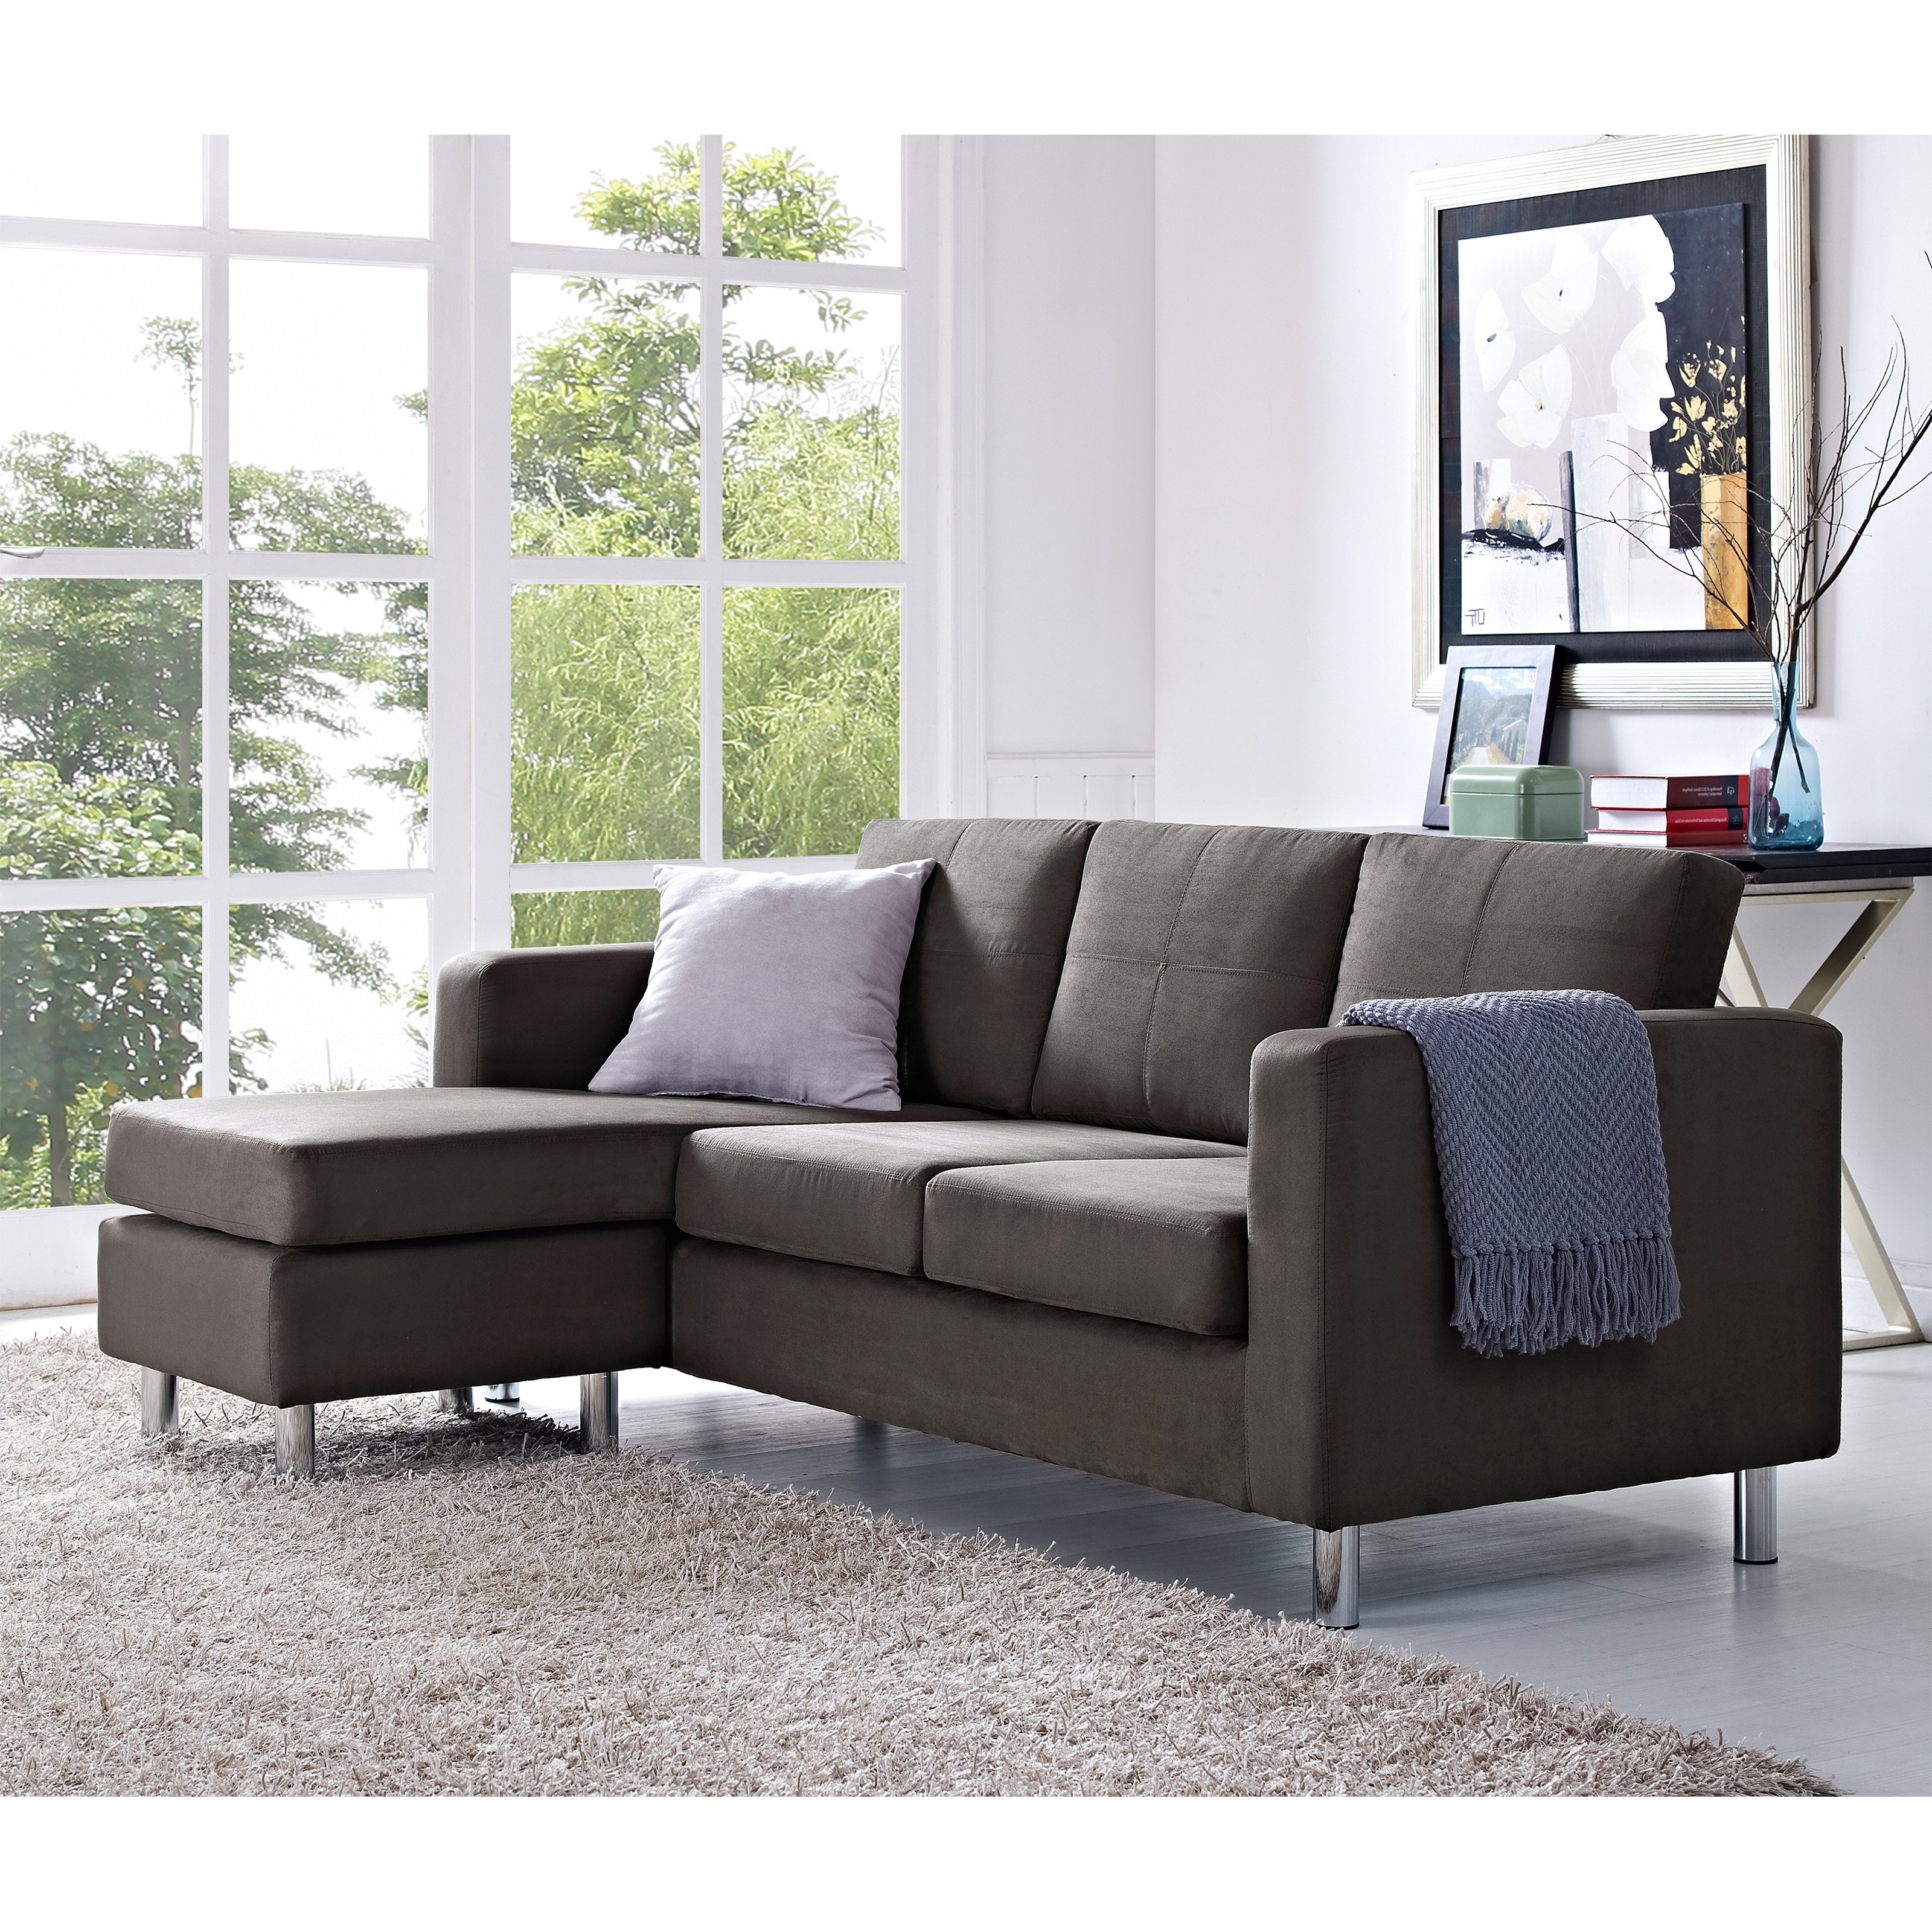 2017 Small Sectional Sofas For Small Spaces With Dorel Living Small Spaces Configurable Sectional Sofa (View 2 of 15)